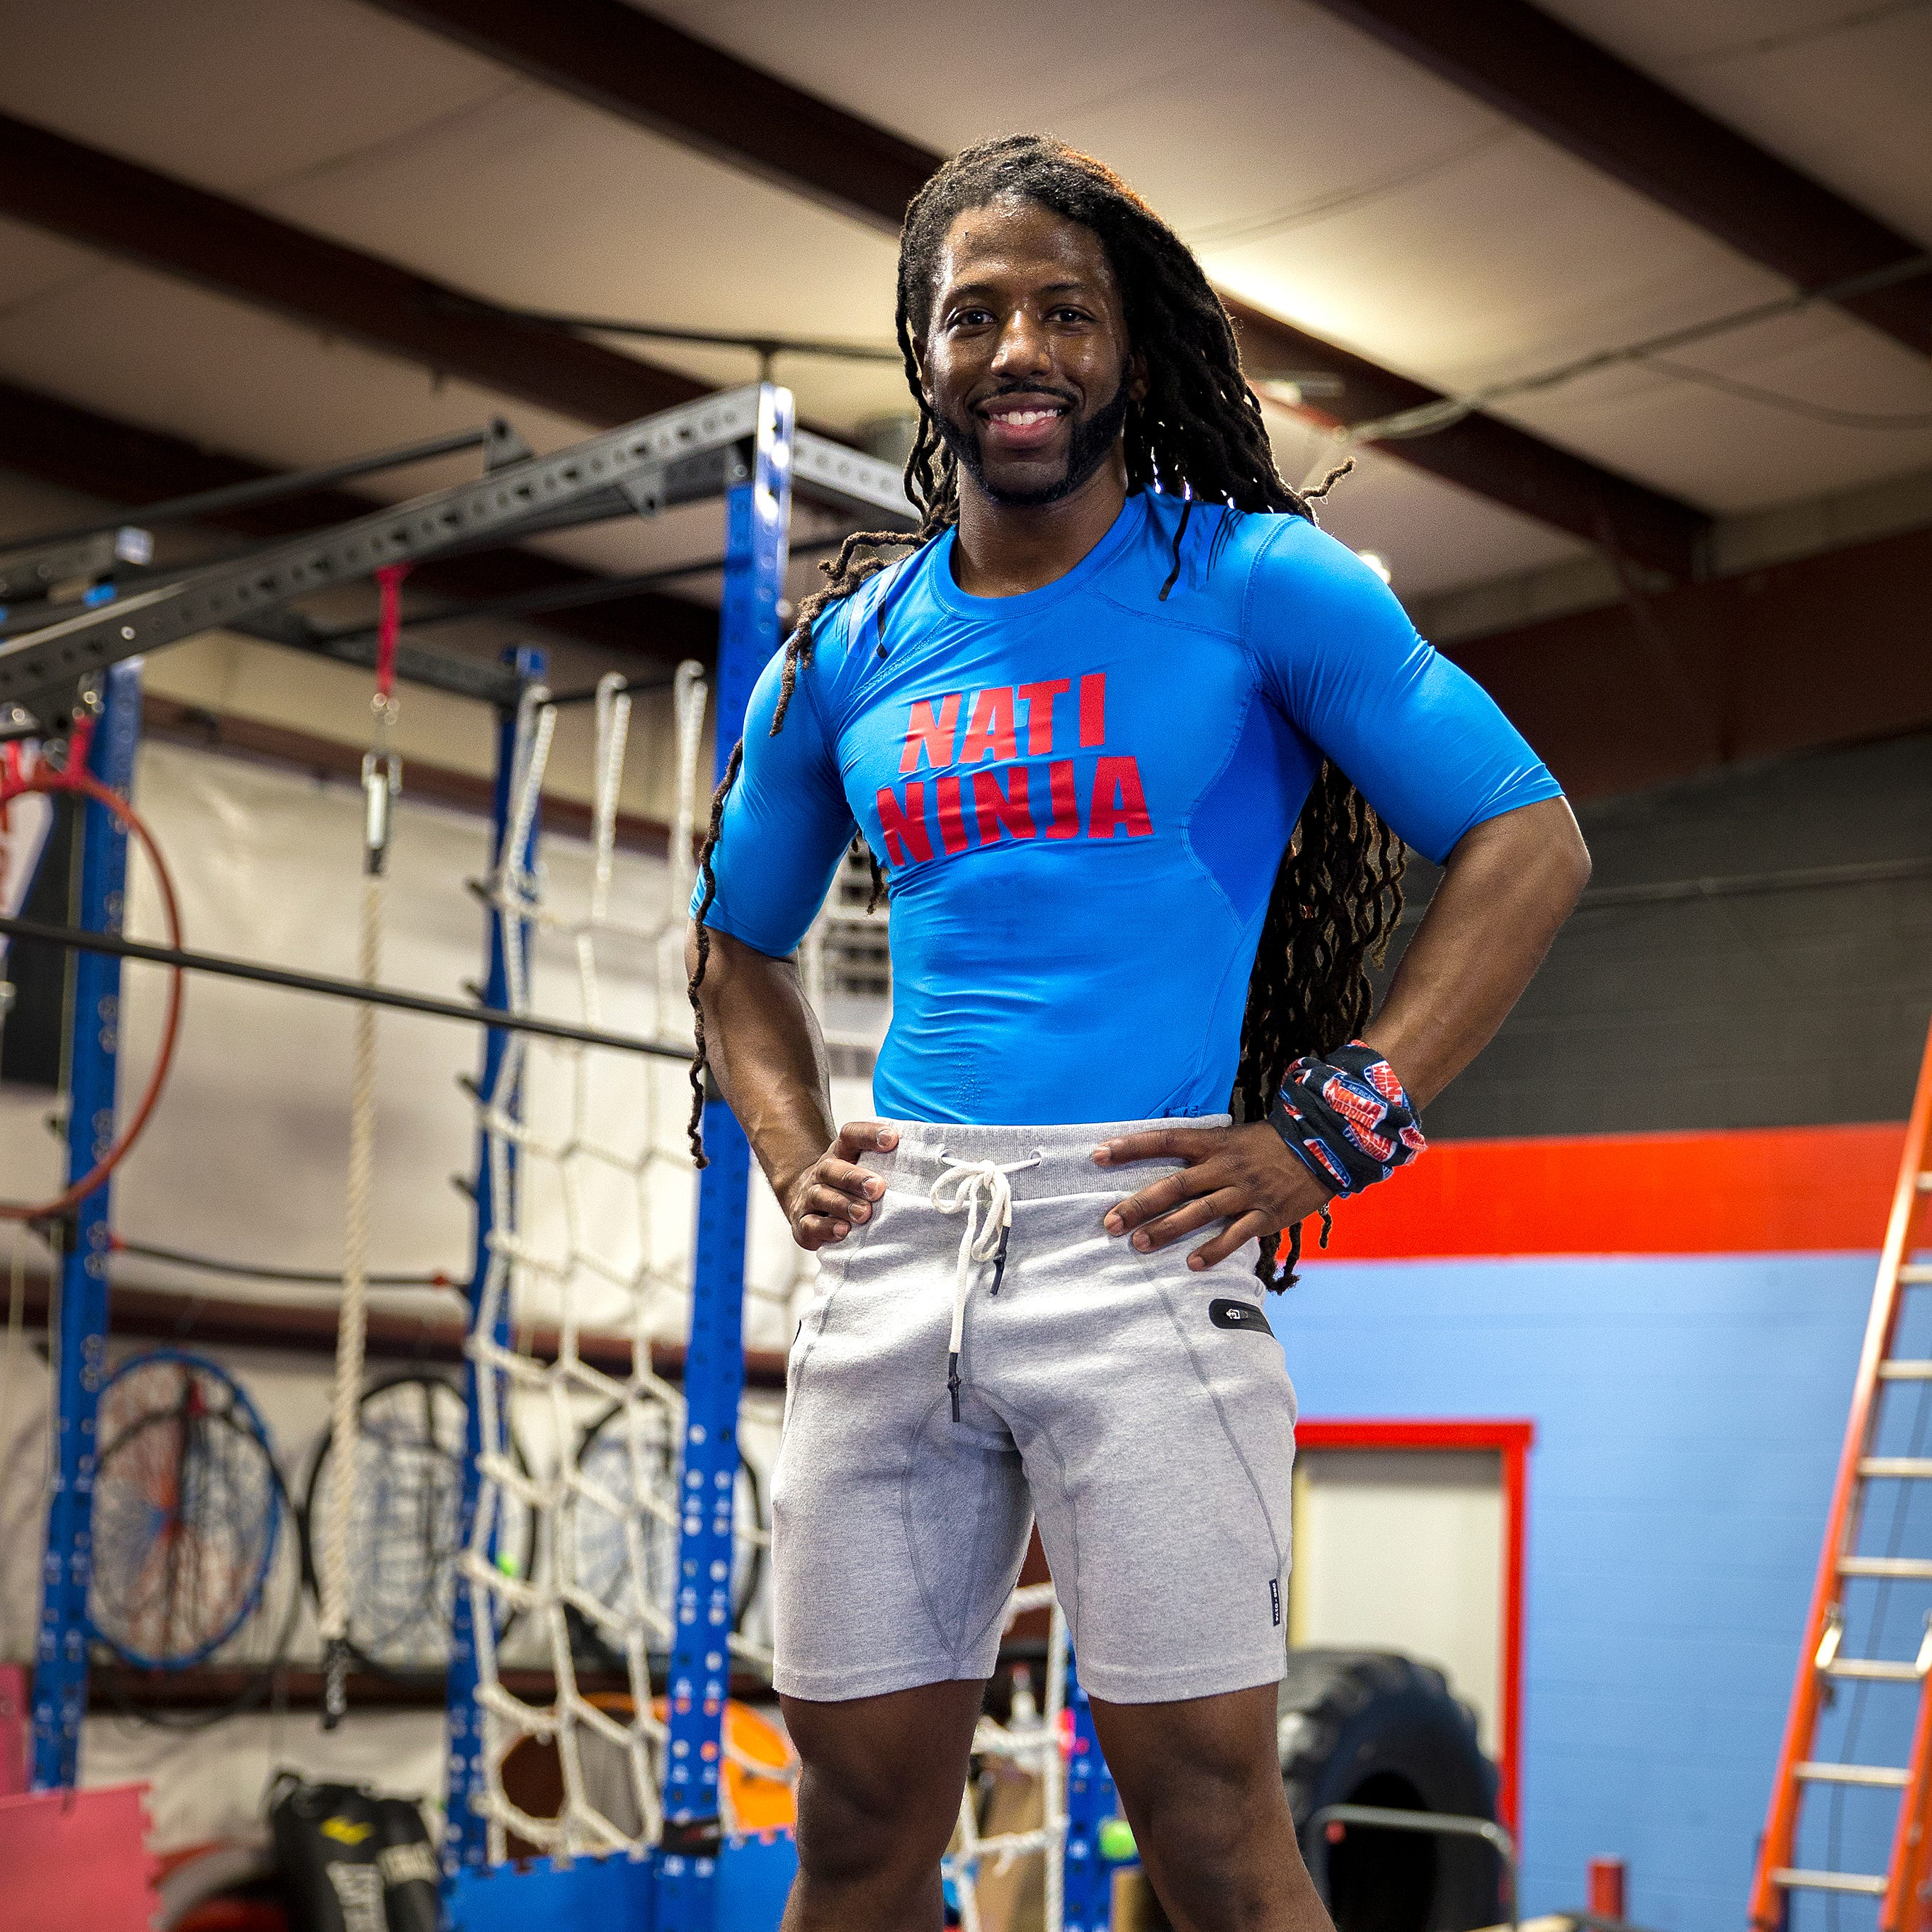 Meet the local guy you're gonna cheer for on 'American Ninja Warrior'